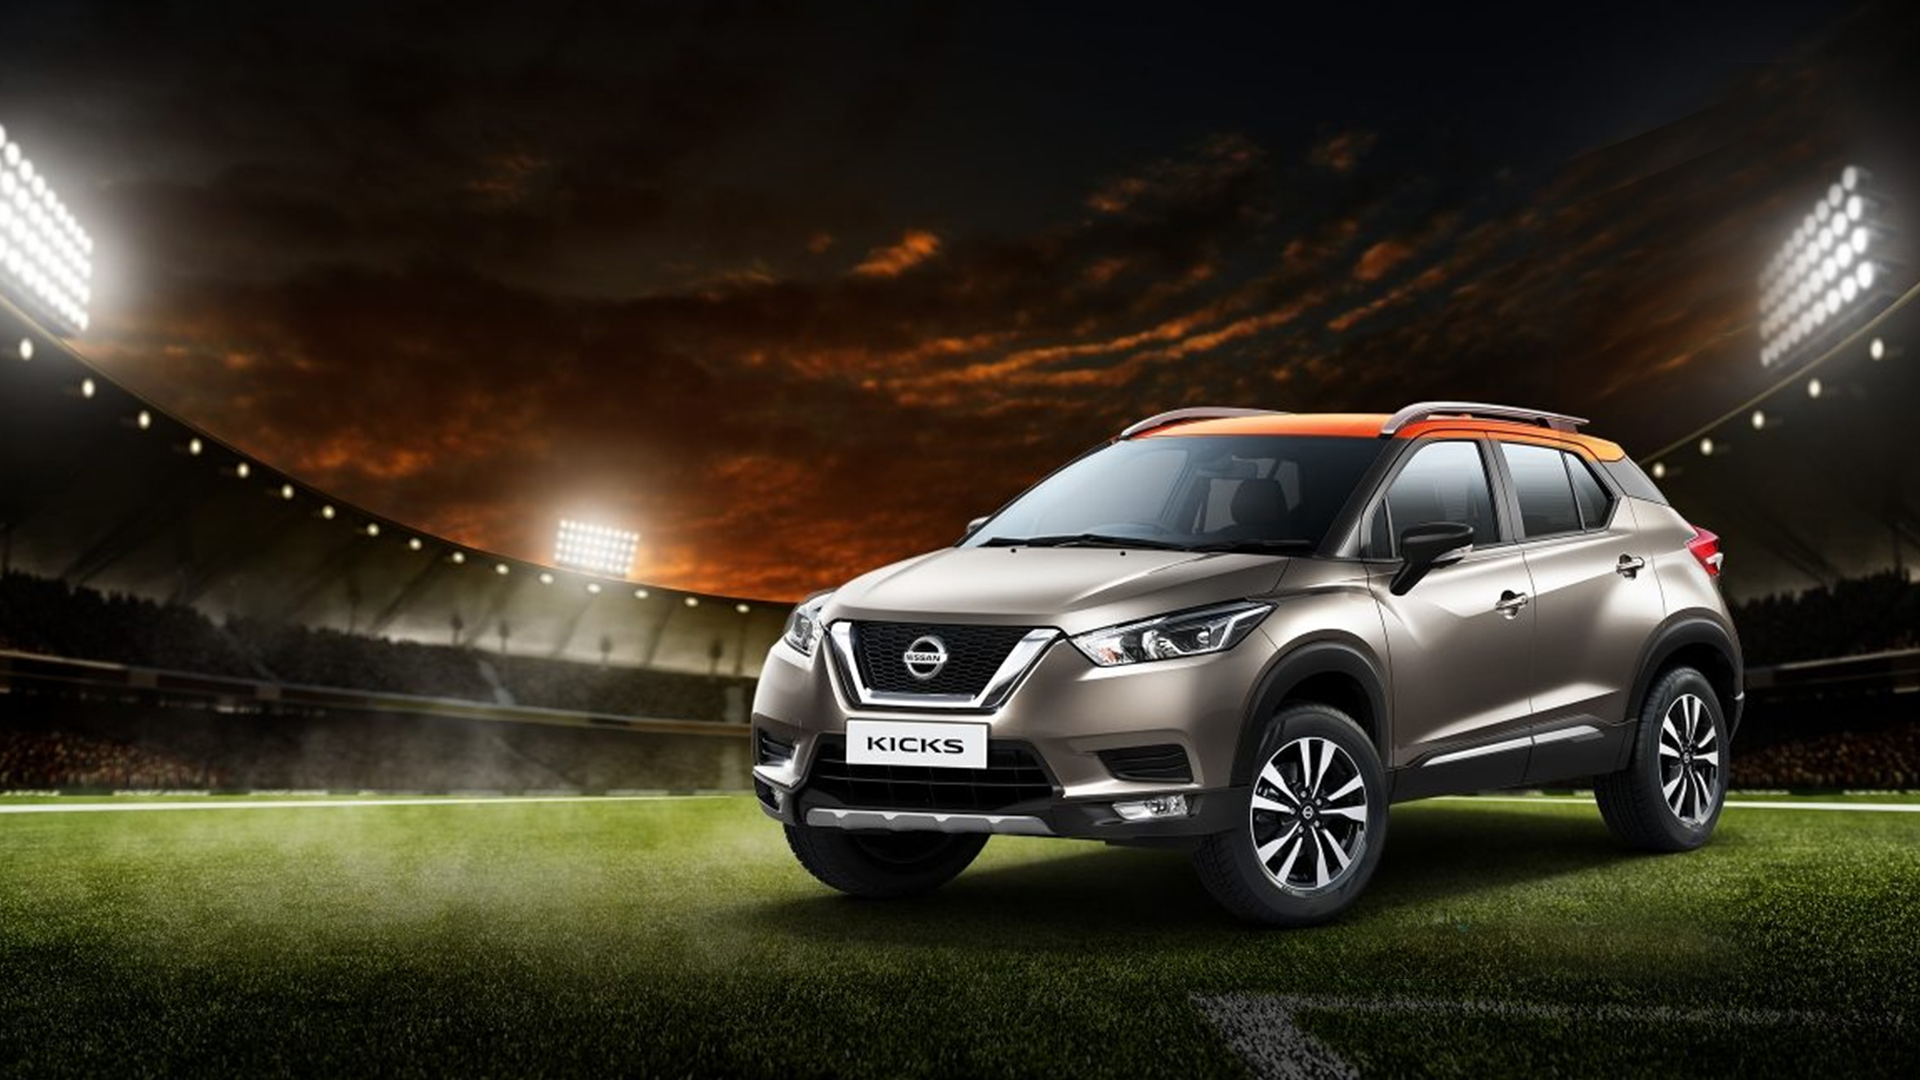 Nissan Kicks Variants and Paint Schemes Revealed